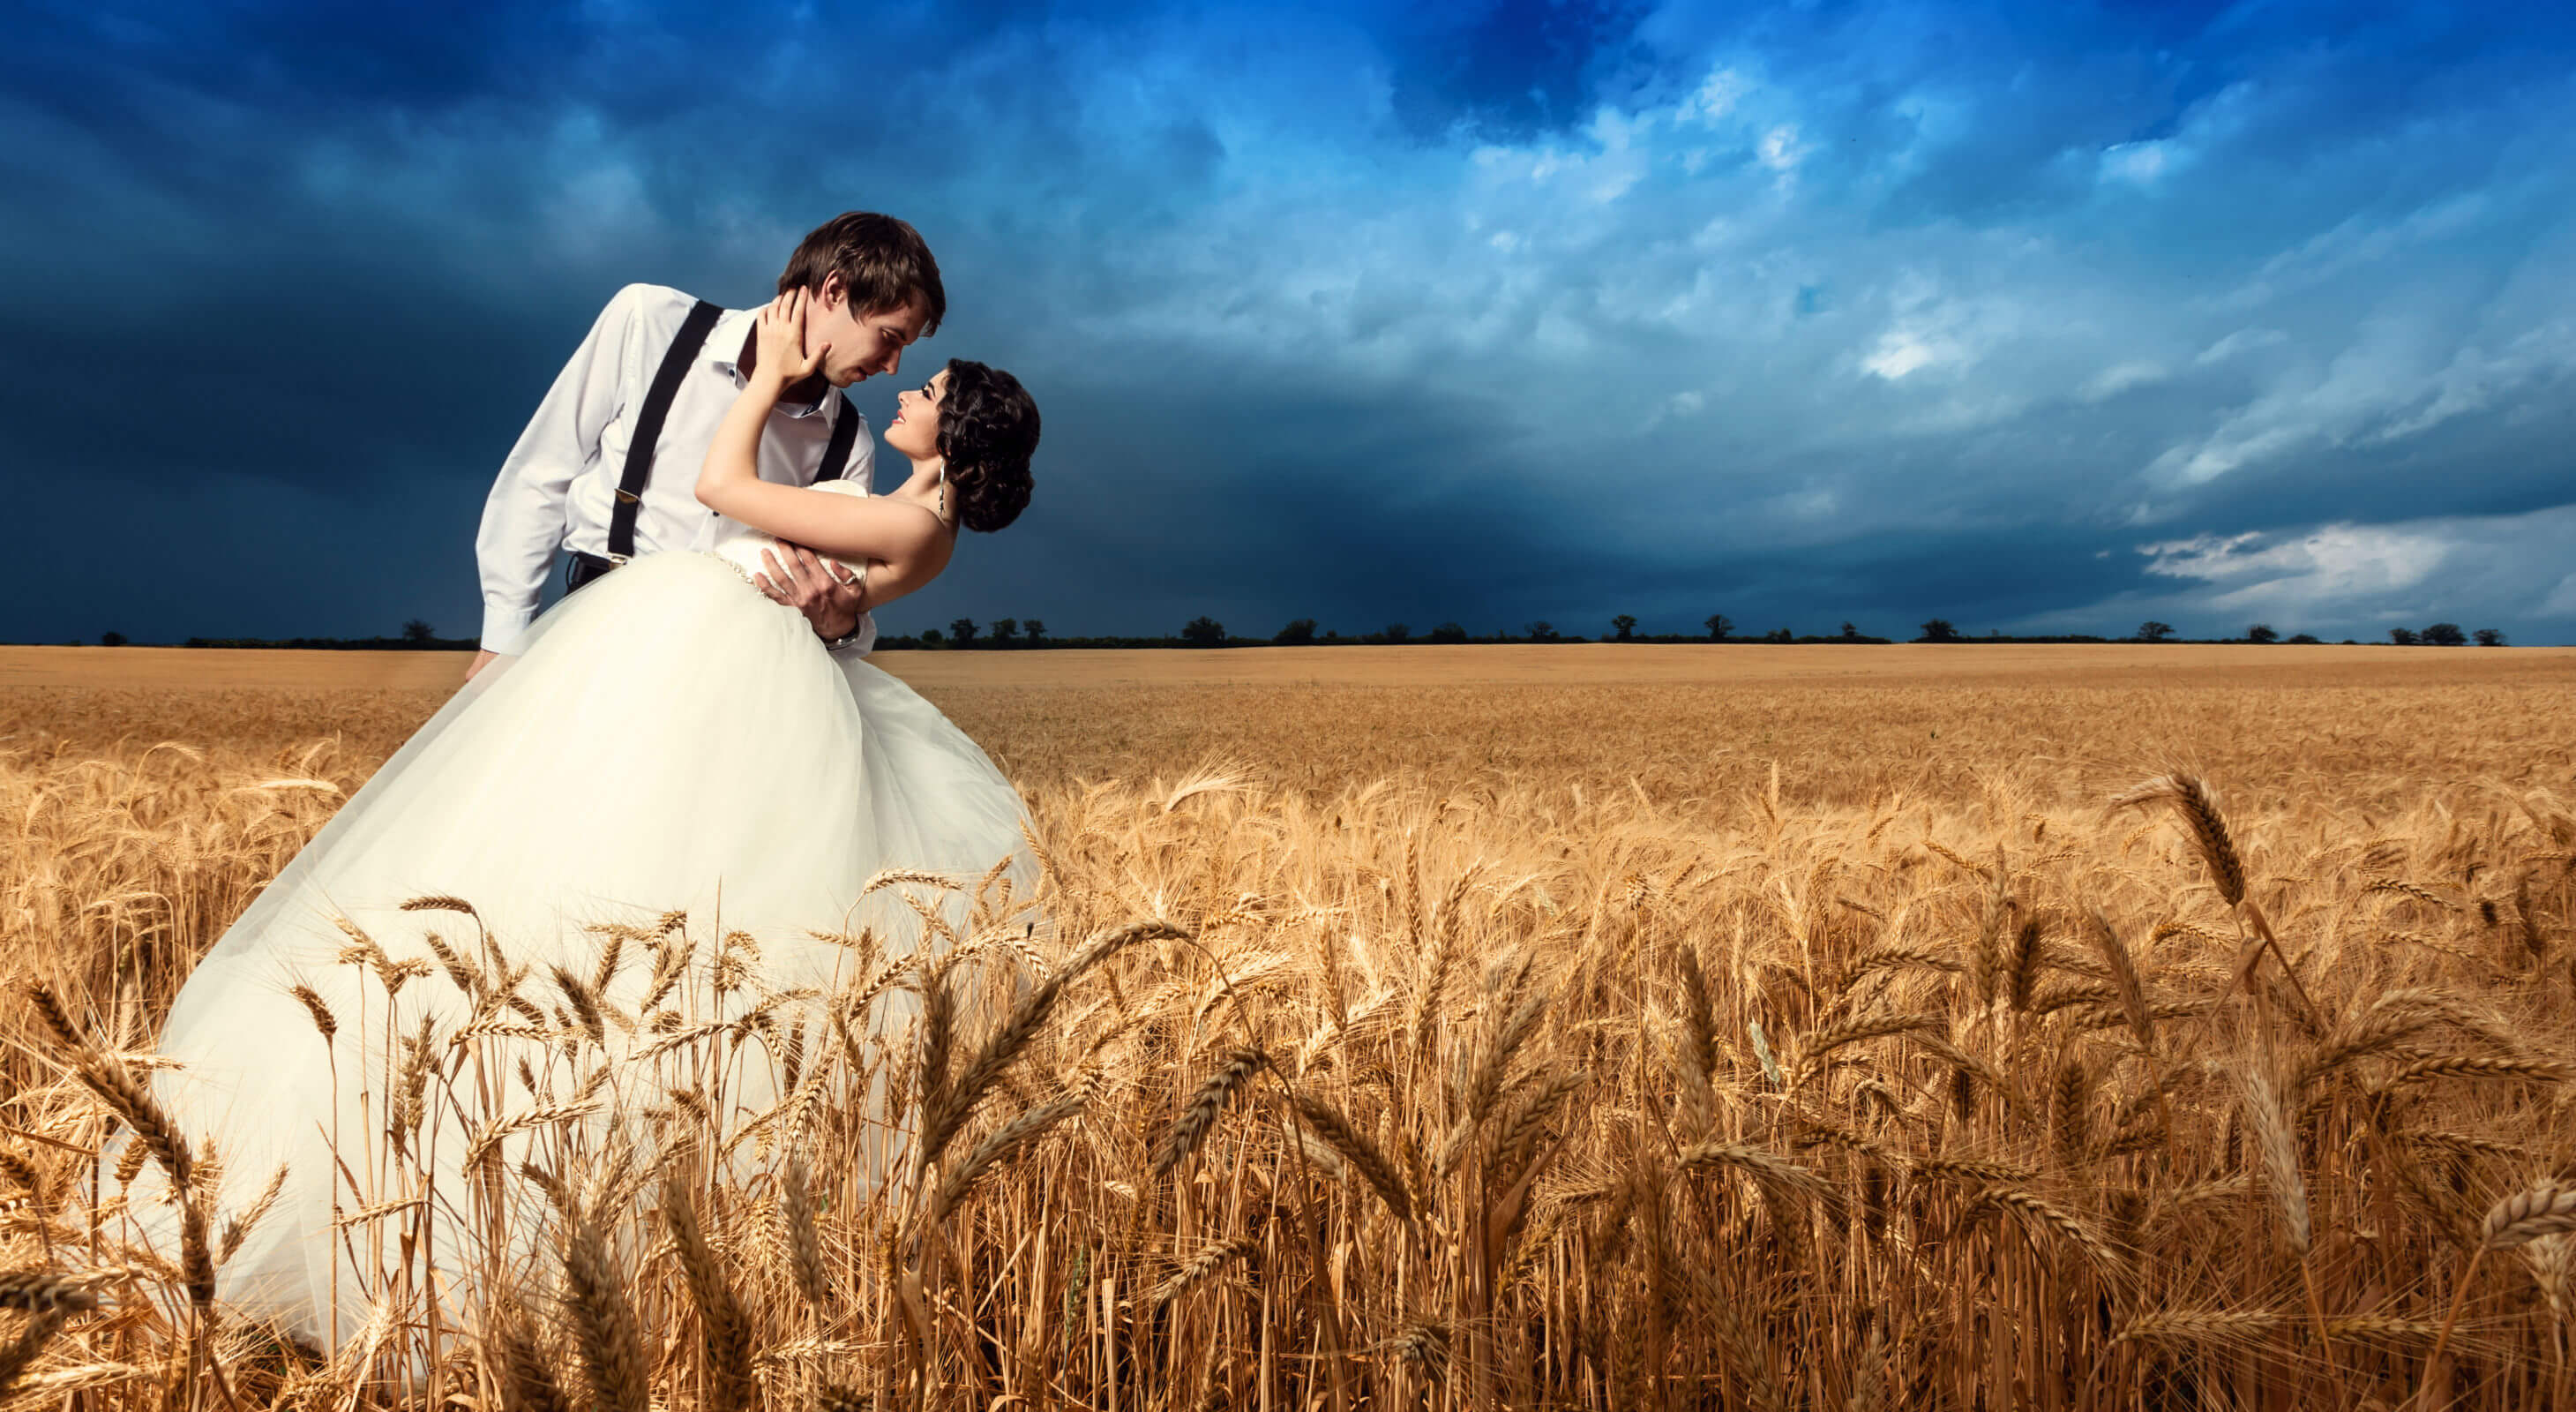 Wedding Venue in a wheat field - bride and groom